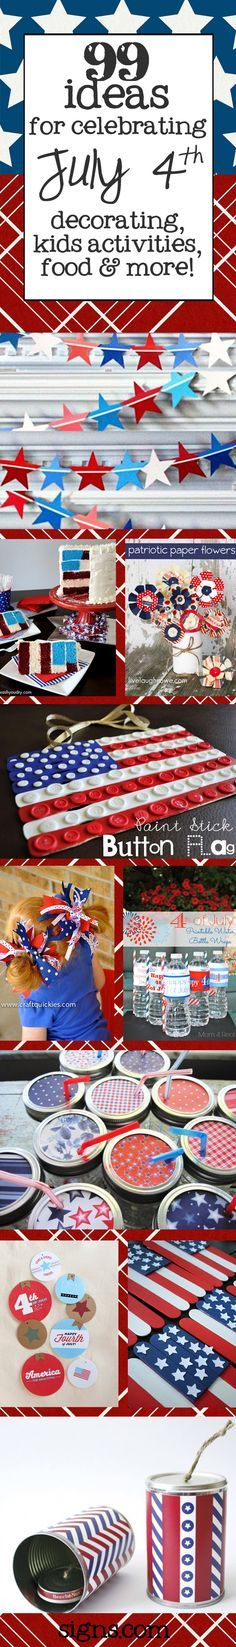 Check out these awesome 4th of July ideas for decorations, kids activities, and recipes #4thofjuly | www.signs.com